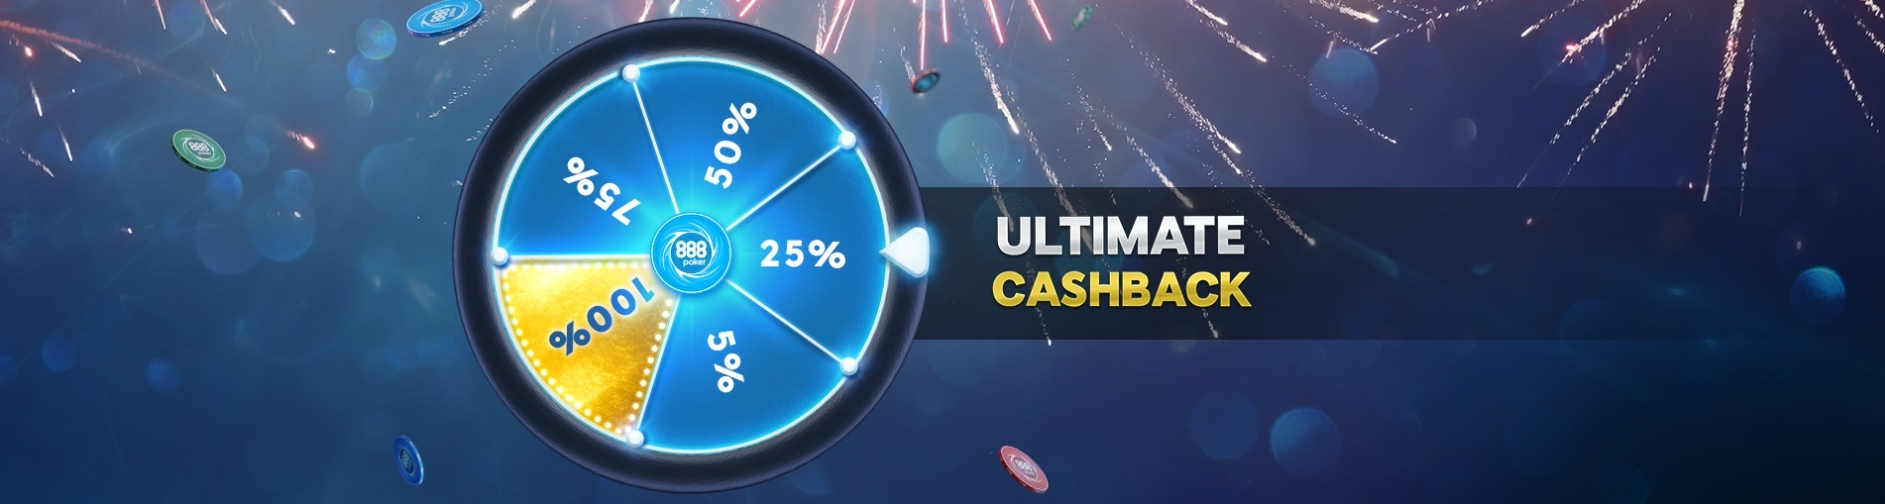 888poker Ultimate Cashback